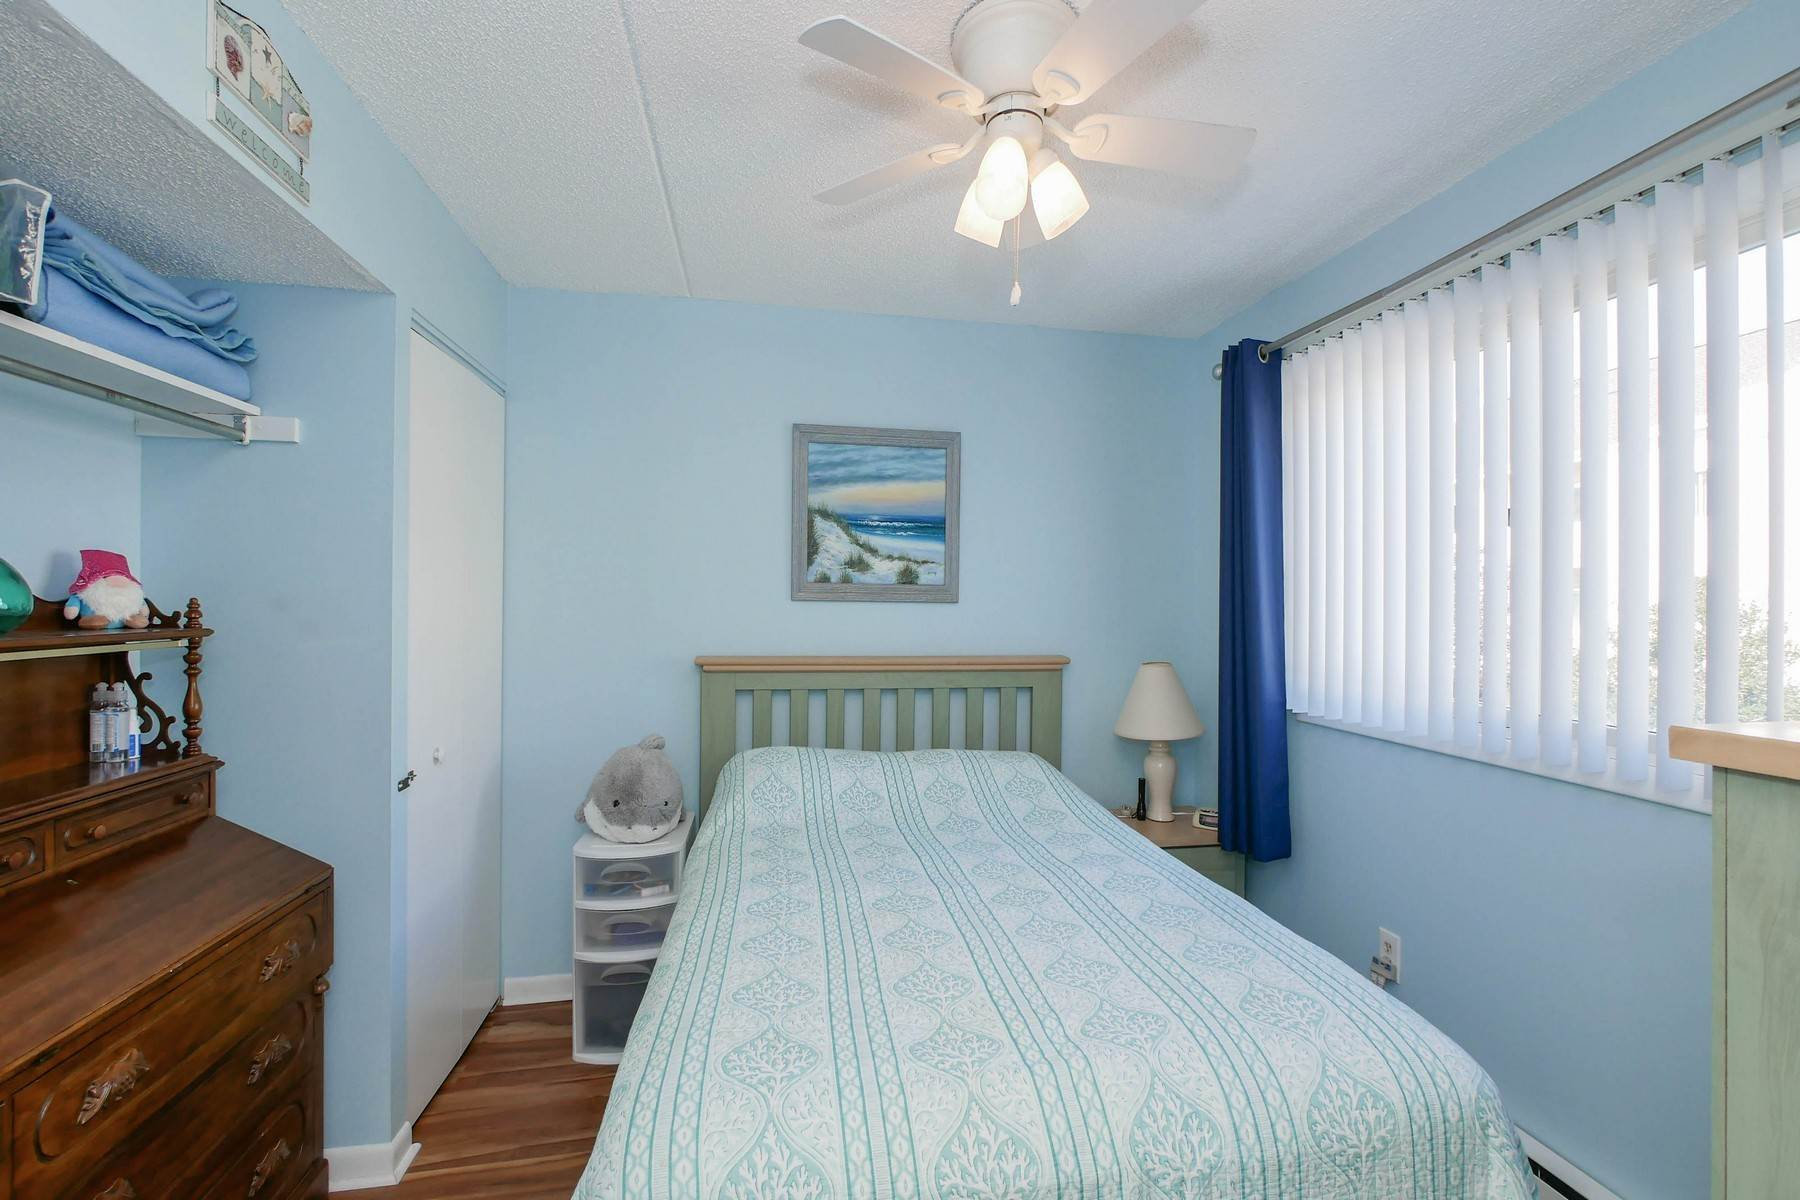 24. Condominiums for Sale at Boardwalk Best Buy 831 Atlantic Ave, #115-116 Ocean City, New Jersey 08226 United States